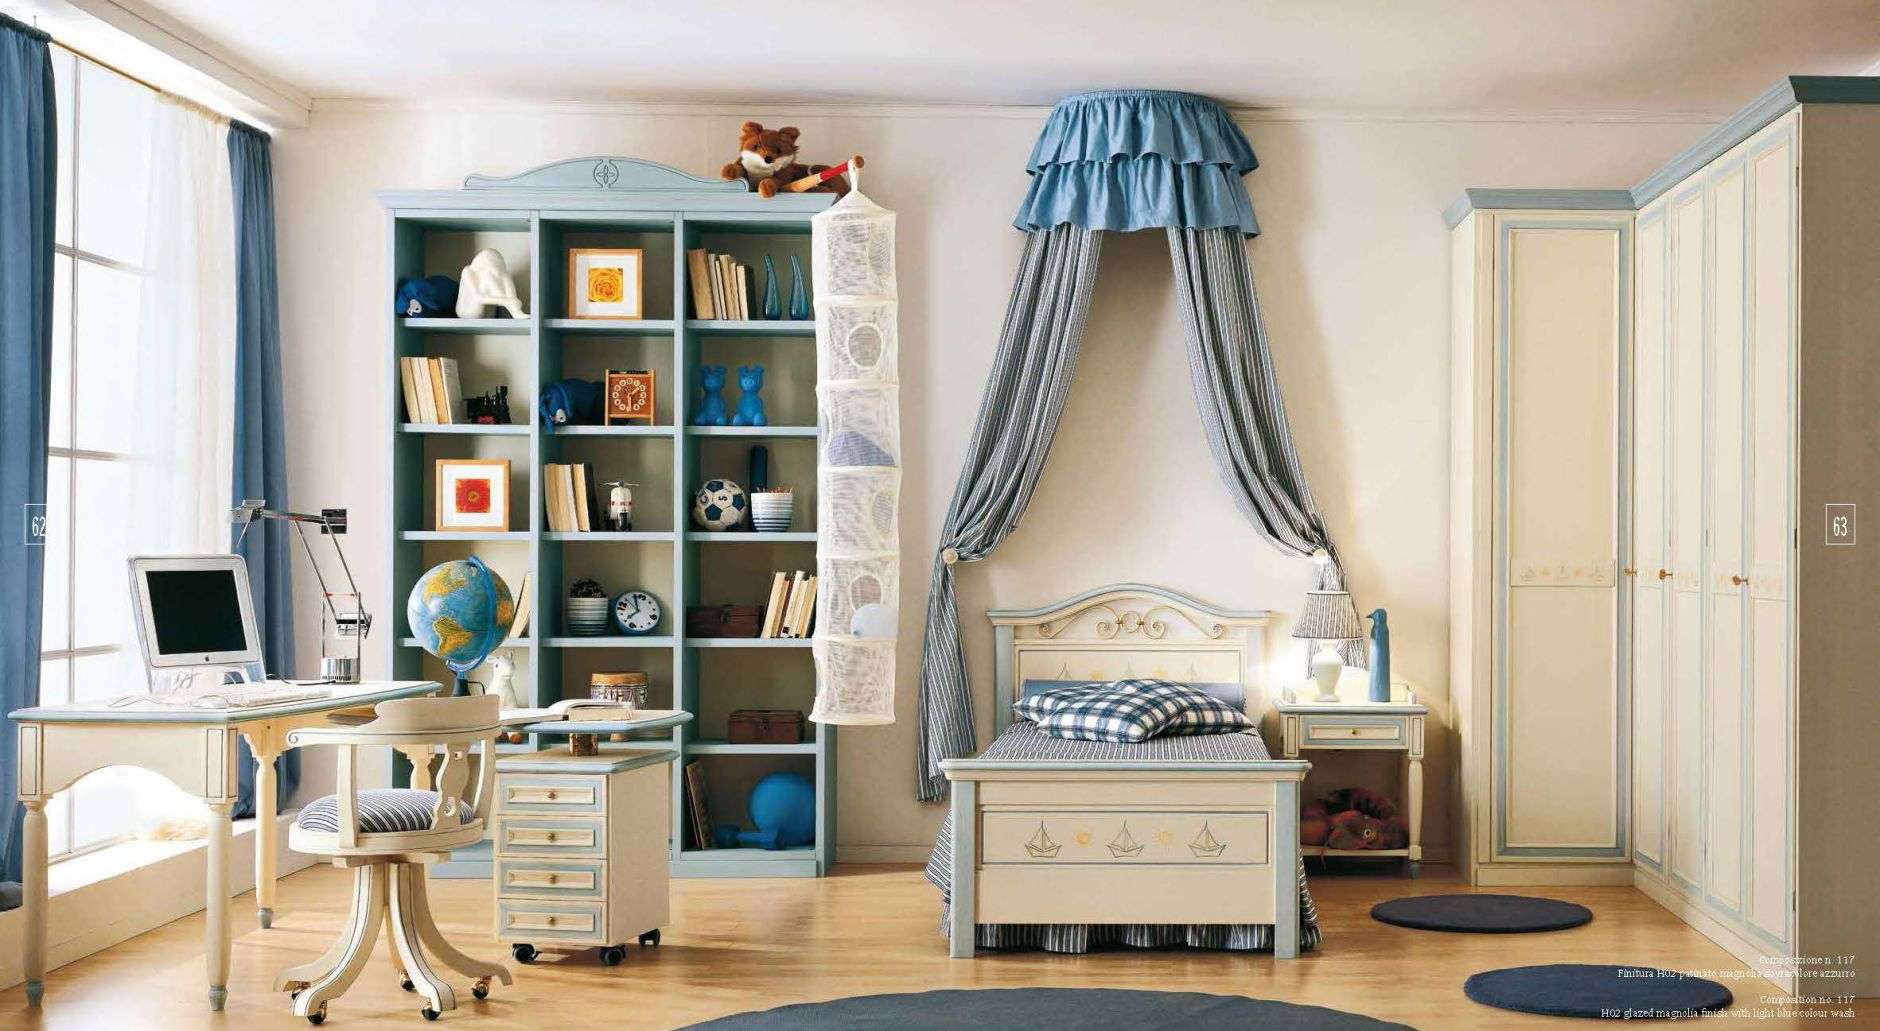 kinderm bel kinder schlafzimmer ferretti ferretti zusammensetzung 117die m bel aus italien. Black Bedroom Furniture Sets. Home Design Ideas